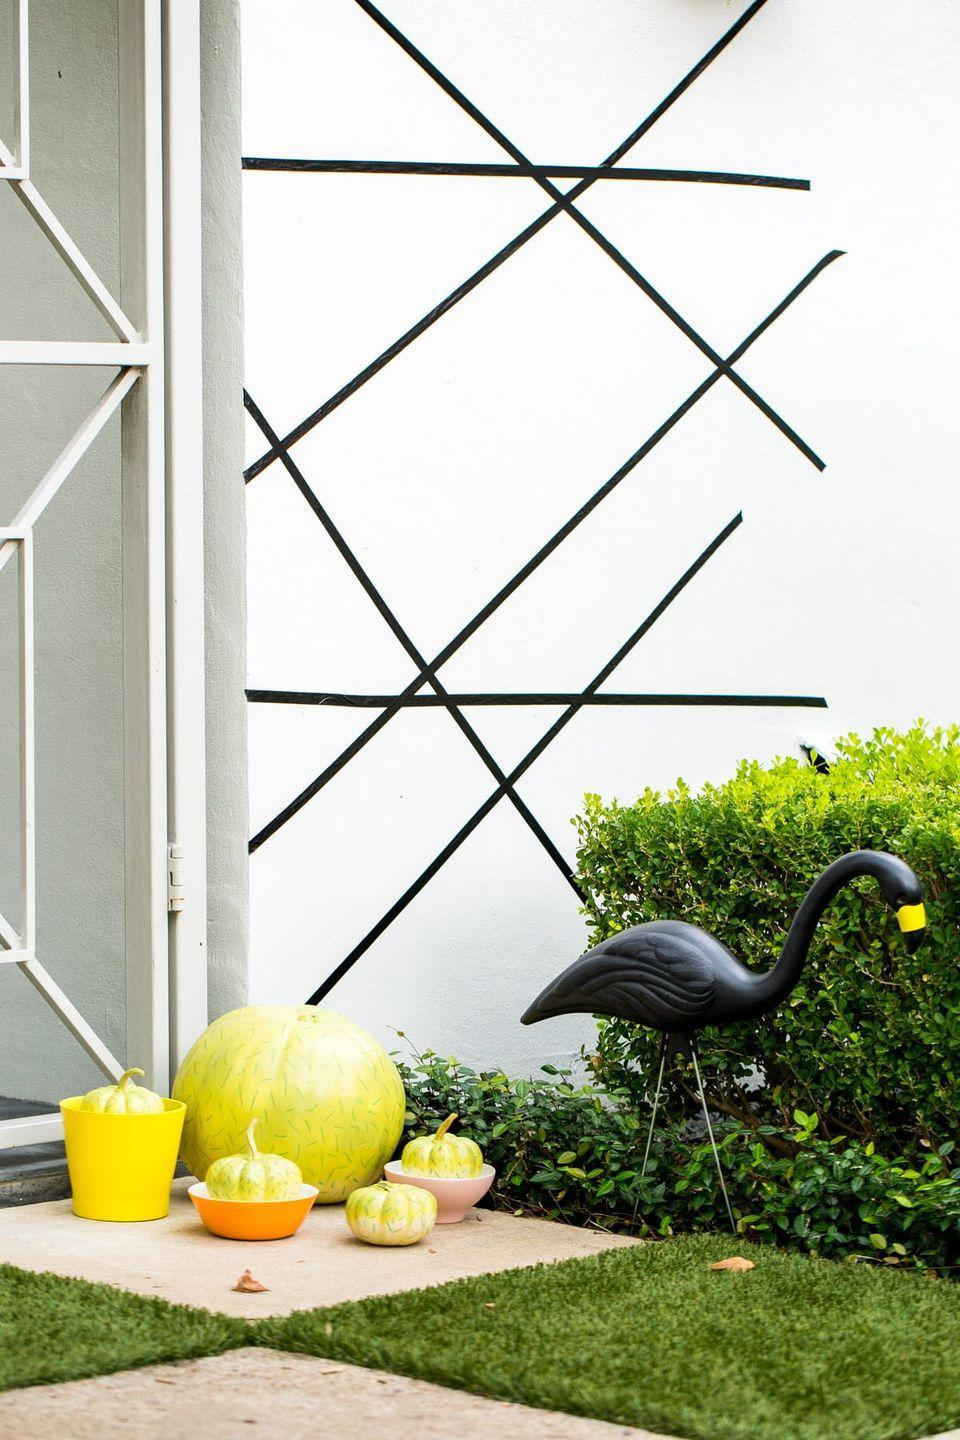 """<p>If your yard has more palm trees than maple trees, don't give up on decorating for Halloween. These plastic flamingos will blend in just fine, no matter the season.</p><p><a class=""""link rapid-noclick-resp"""" href=""""https://www.amazon.com/GiftExpress-Halloween-Flamingos-Ornaments-Decorations/dp/B08JH95SHM/ref=asc_df_B08JH95SHM/?tag=syn-yahoo-20&ascsubtag=%5Bartid%7C10055.g.421%5Bsrc%7Cyahoo-us"""" rel=""""nofollow noopener"""" target=""""_blank"""" data-ylk=""""slk:SHOP BLACK FLAMINGOS"""">SHOP BLACK FLAMINGOS</a></p><p><em><a href=""""https://sugarandcloth.com/palm-springs-inspired-halloween-decor/"""" rel=""""nofollow noopener"""" target=""""_blank"""" data-ylk=""""slk:Get the tutorial at Sugar & Cloth »"""" class=""""link rapid-noclick-resp"""">Get the tutorial at Sugar & Cloth »</a></em> </p>"""